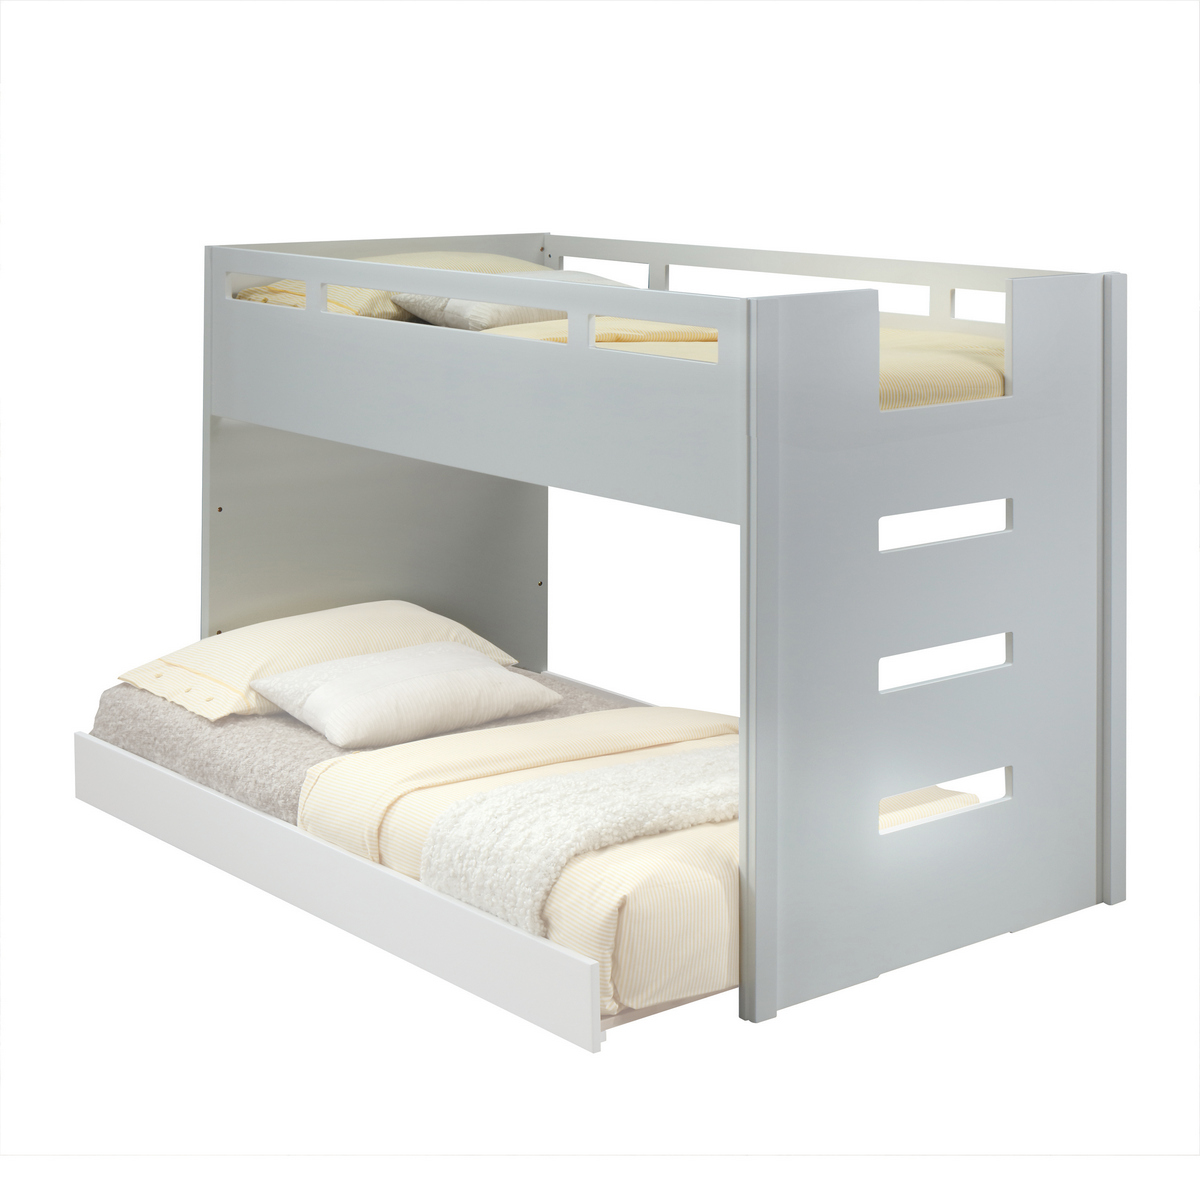 Acme Furniture Bed Photo